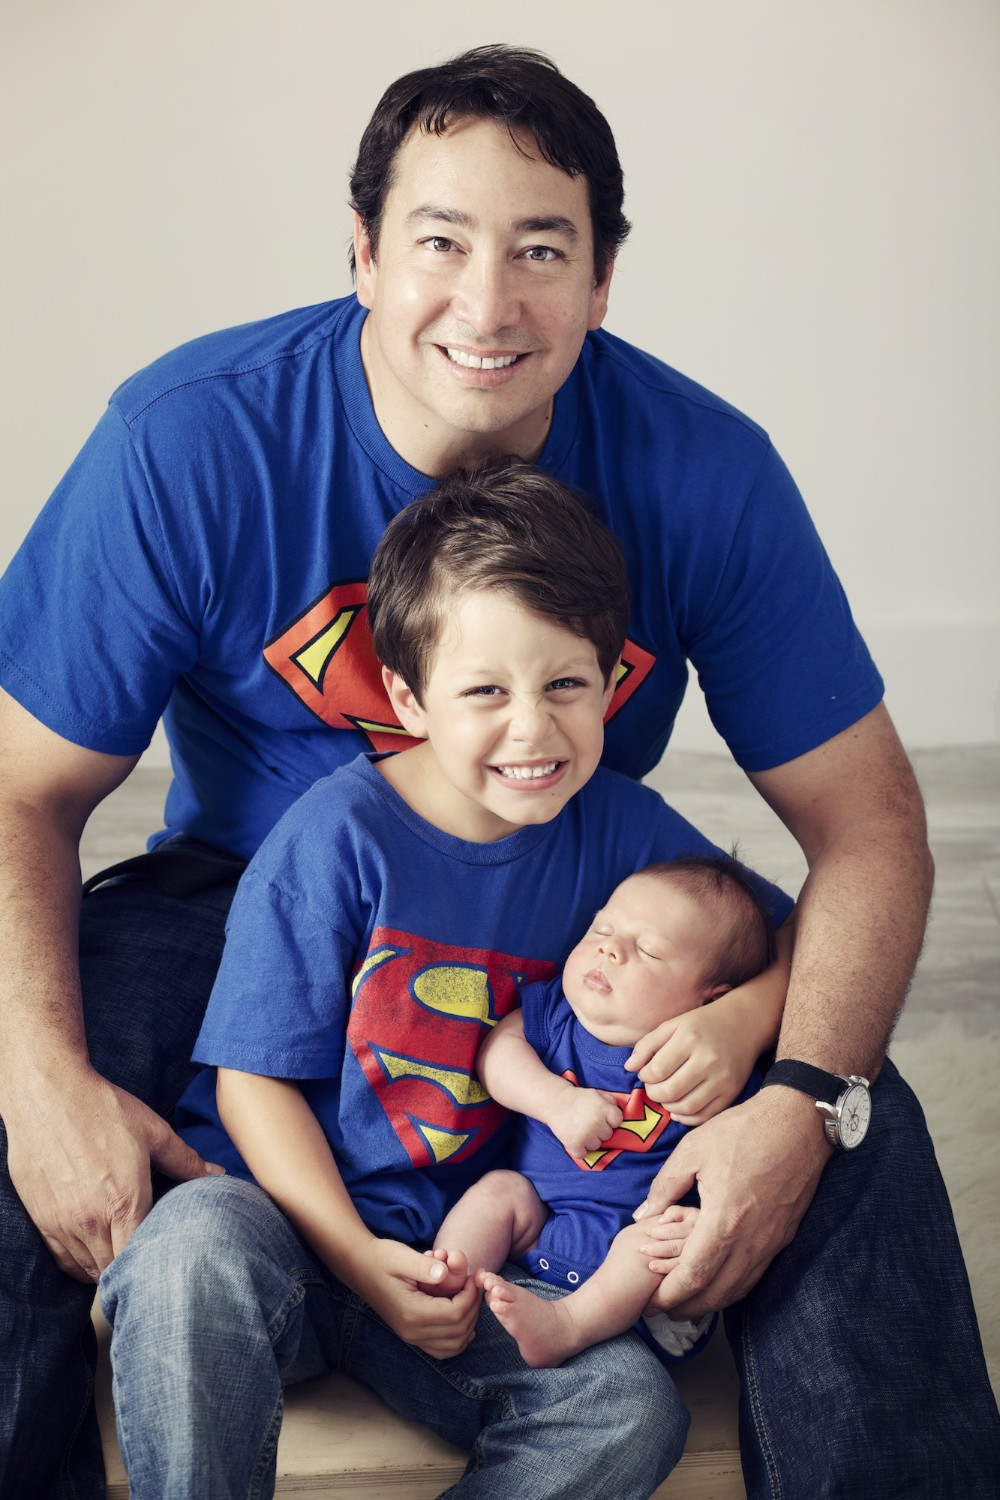 family_miami_portraits_baby_newborn_dad_brother_superman